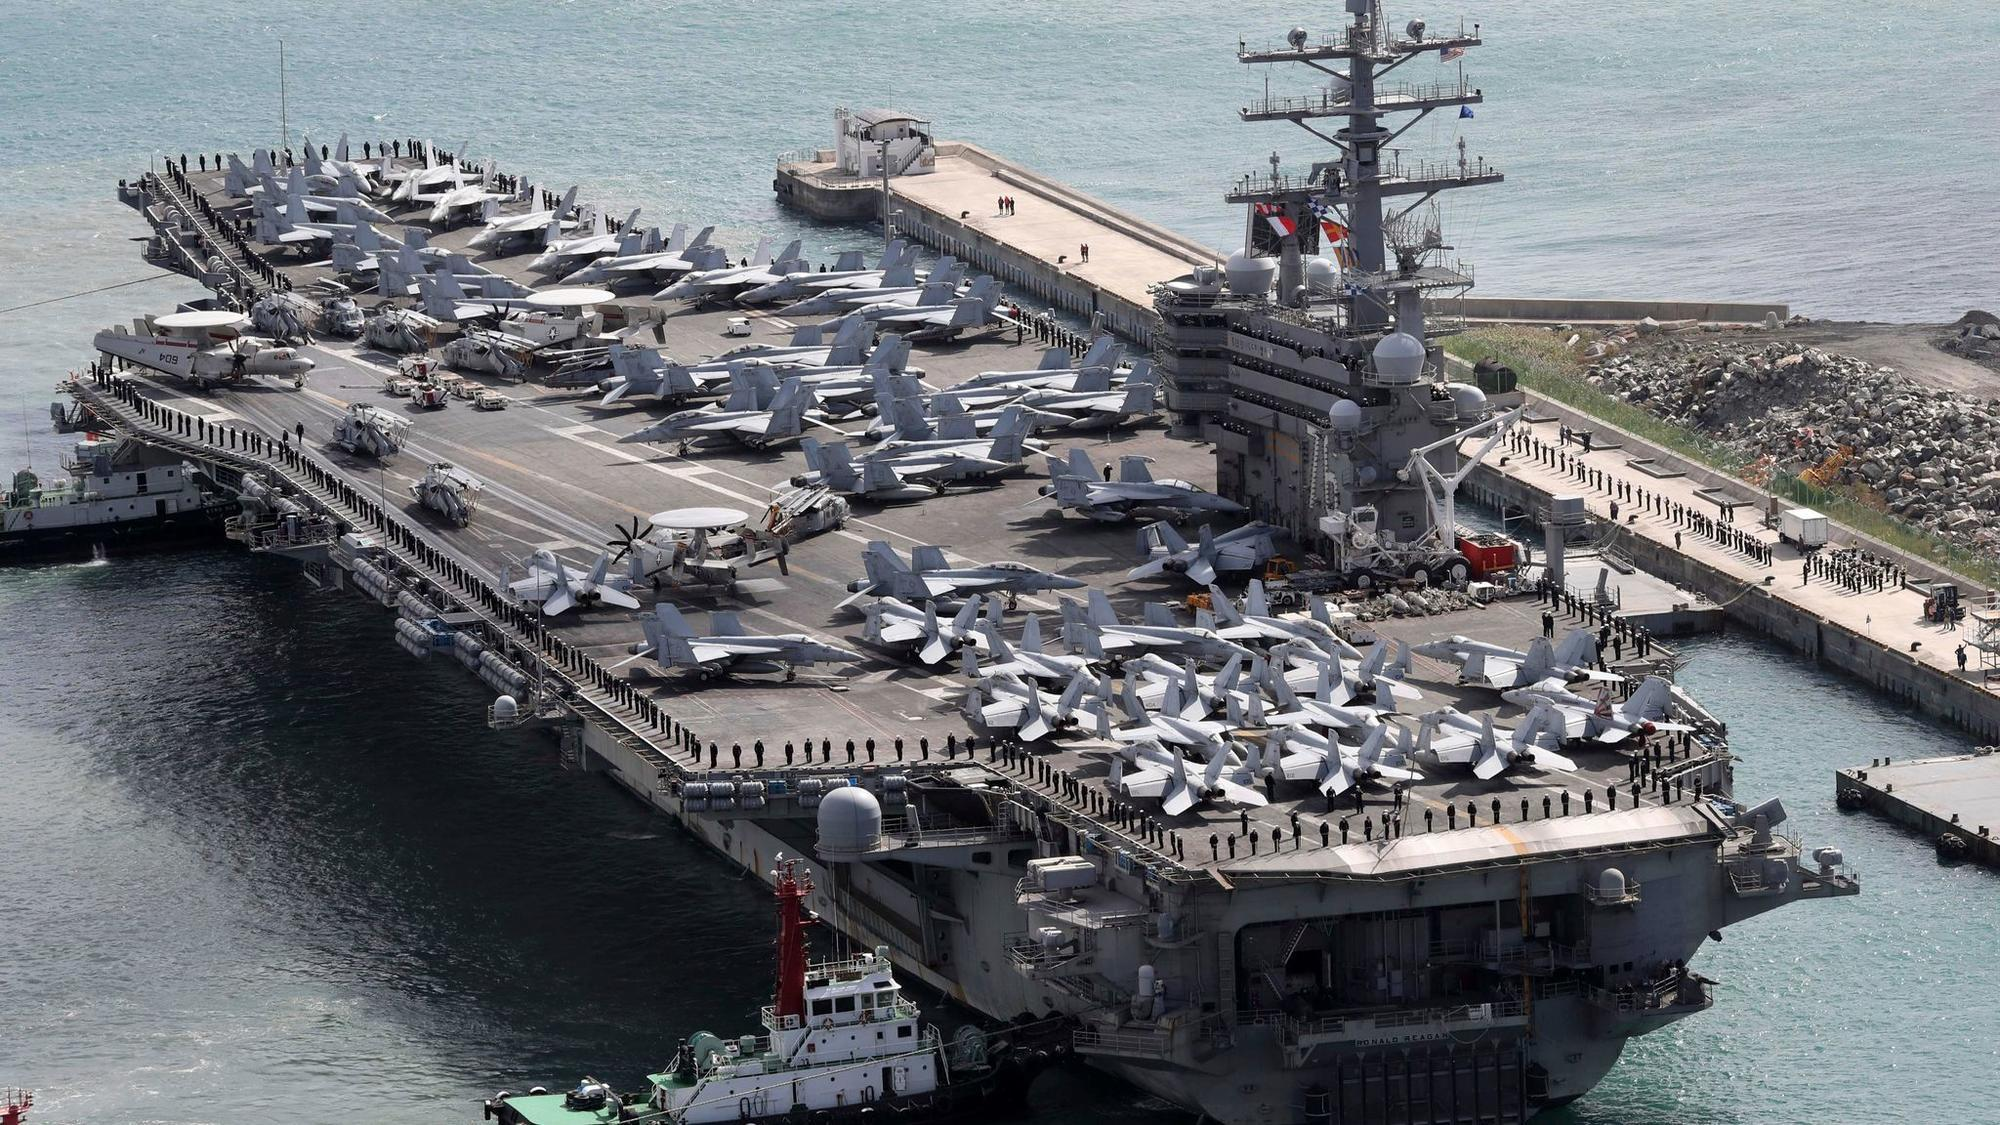 U.S. Navy aircraft carrying 11 crashes into the Pacific Ocean